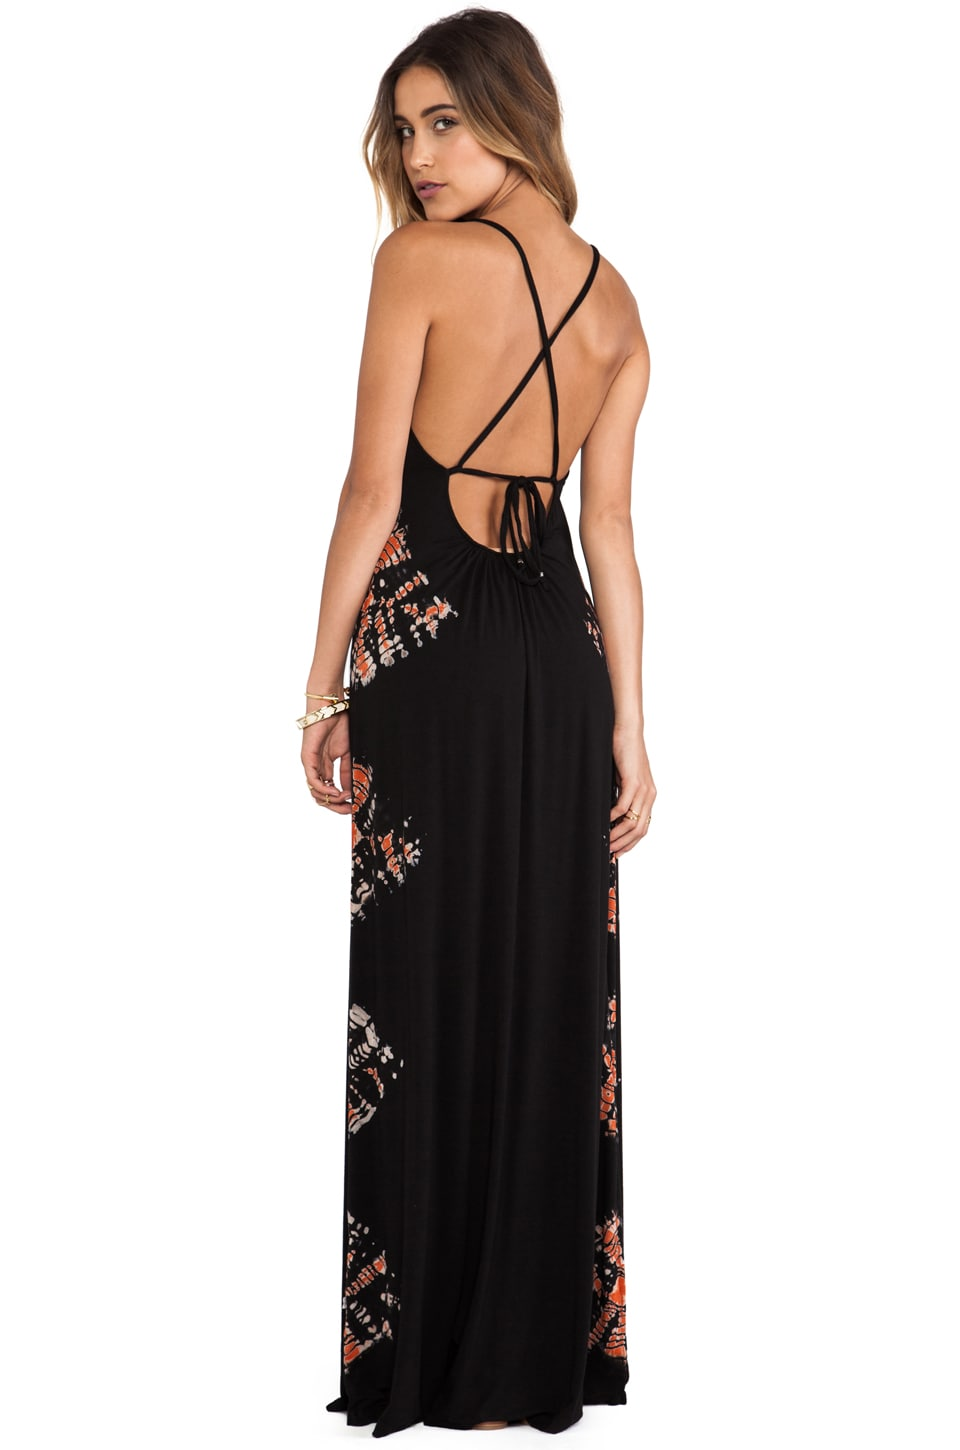 Gypsy 05 X Back Maxi Spaghetti Dress in Black & Red